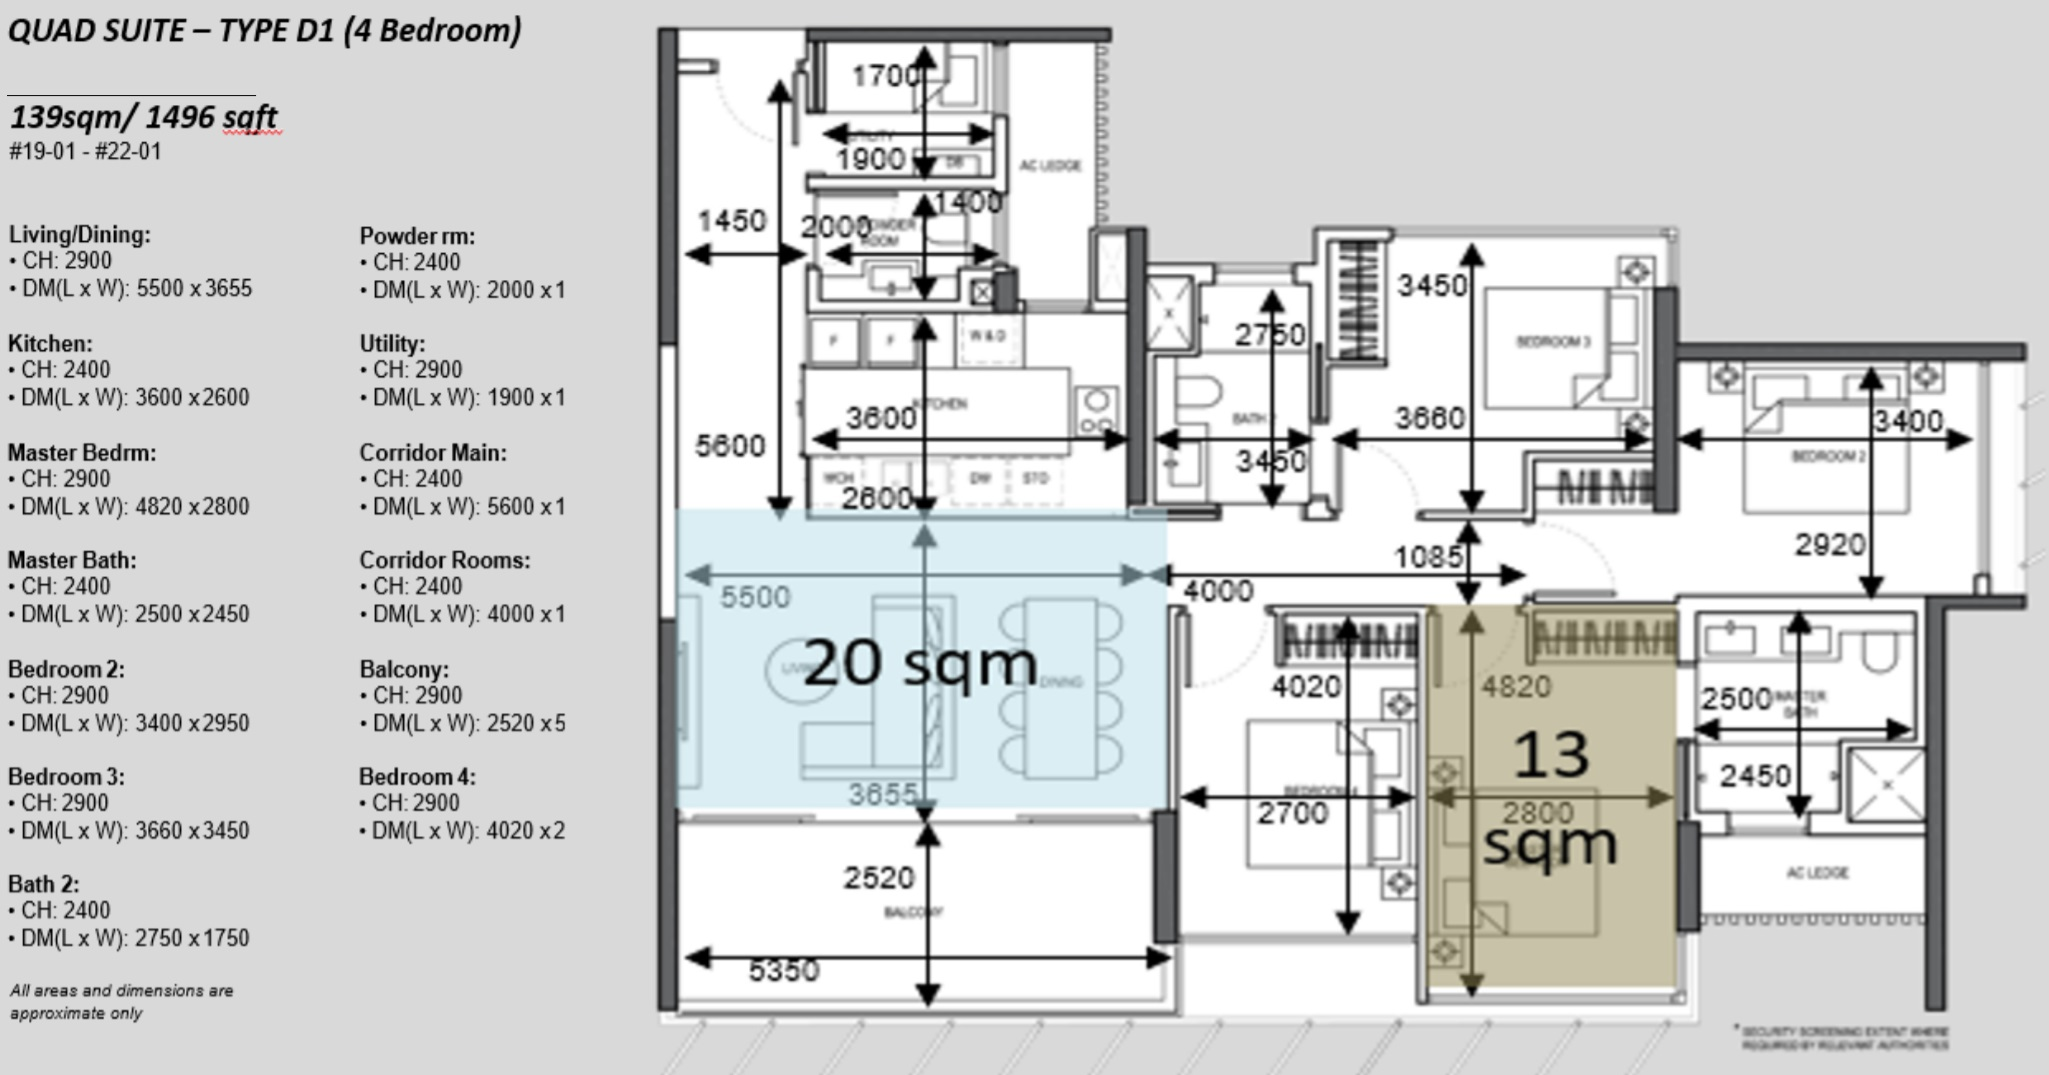 The Atelier condo floorplan 4 bedroom Type D1